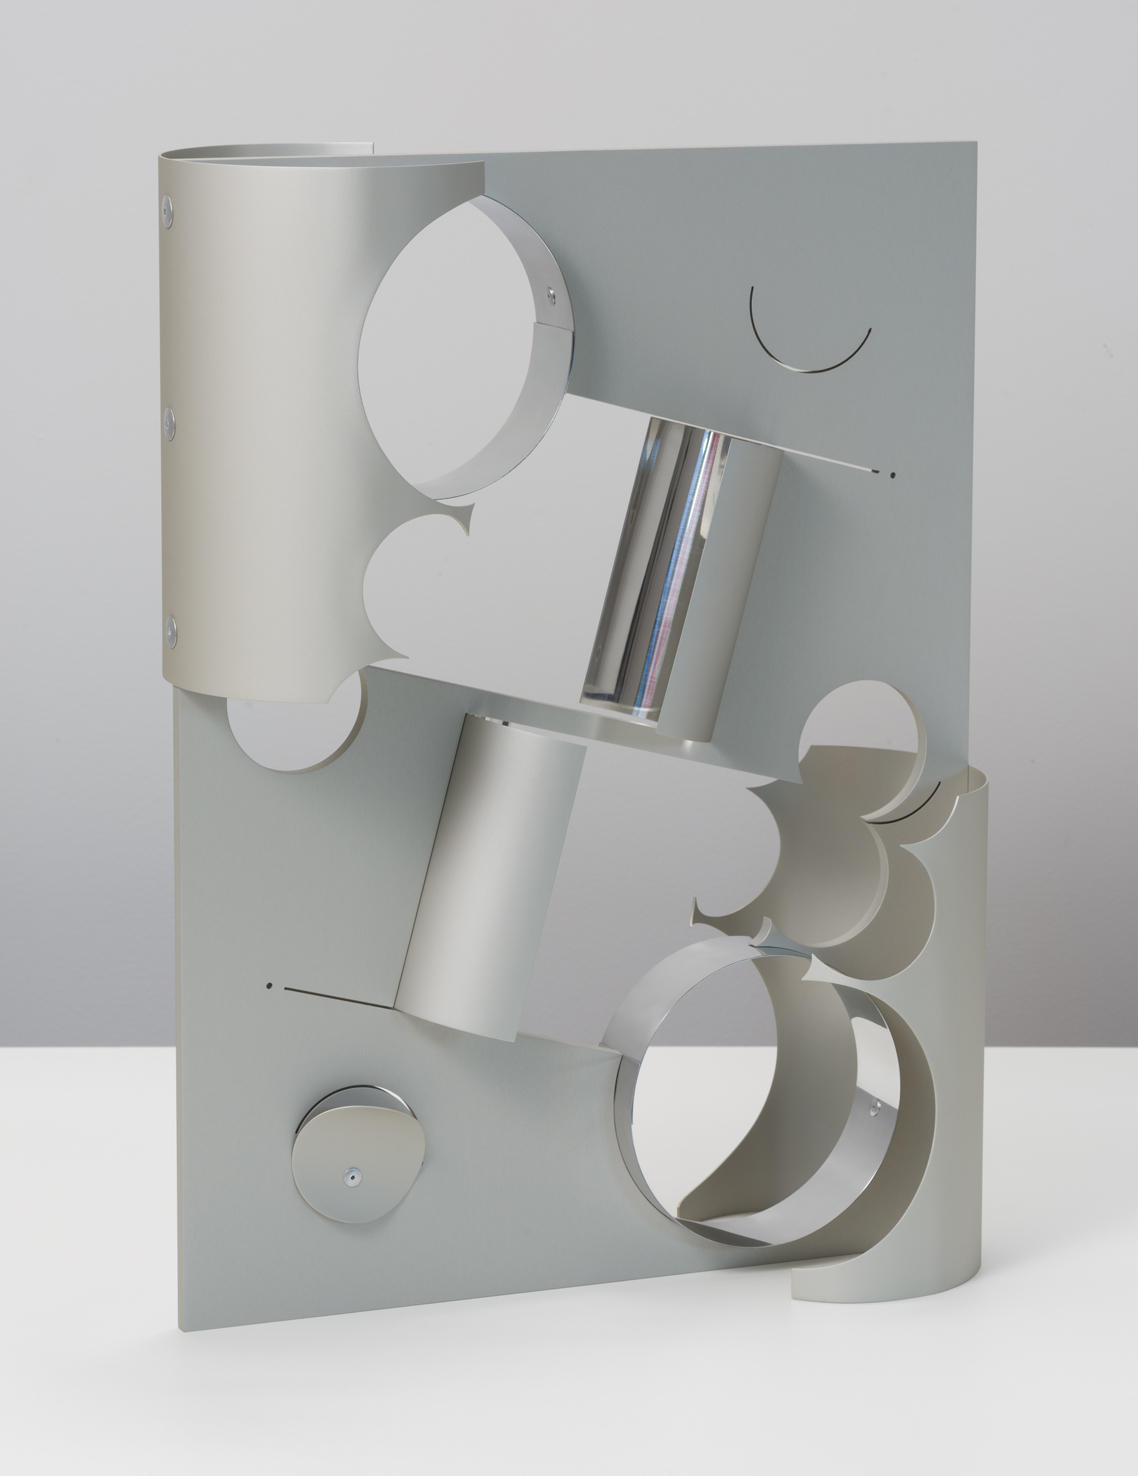 Tina  2018  Anodised and polished aluminium, aluminium rivets  57.7 x 43.1 x 17.7 cm / 22.75 x 17 x 7 in